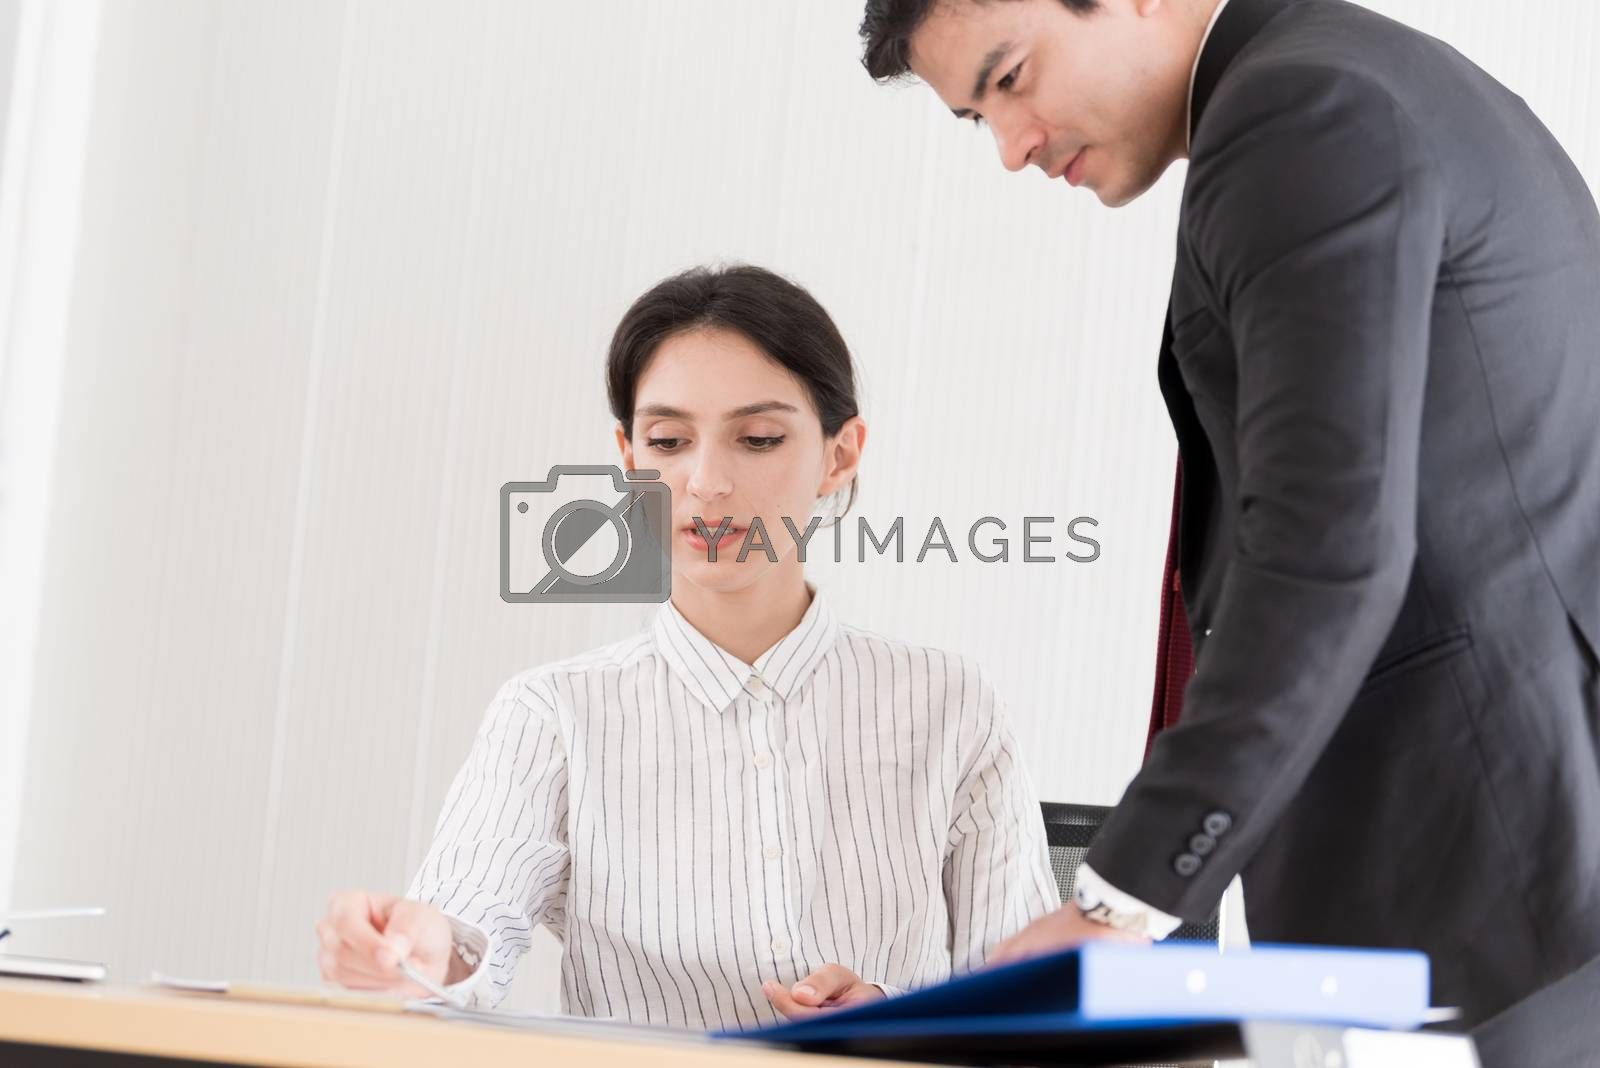 A manager and secretary working together in the office. by animagesdesign